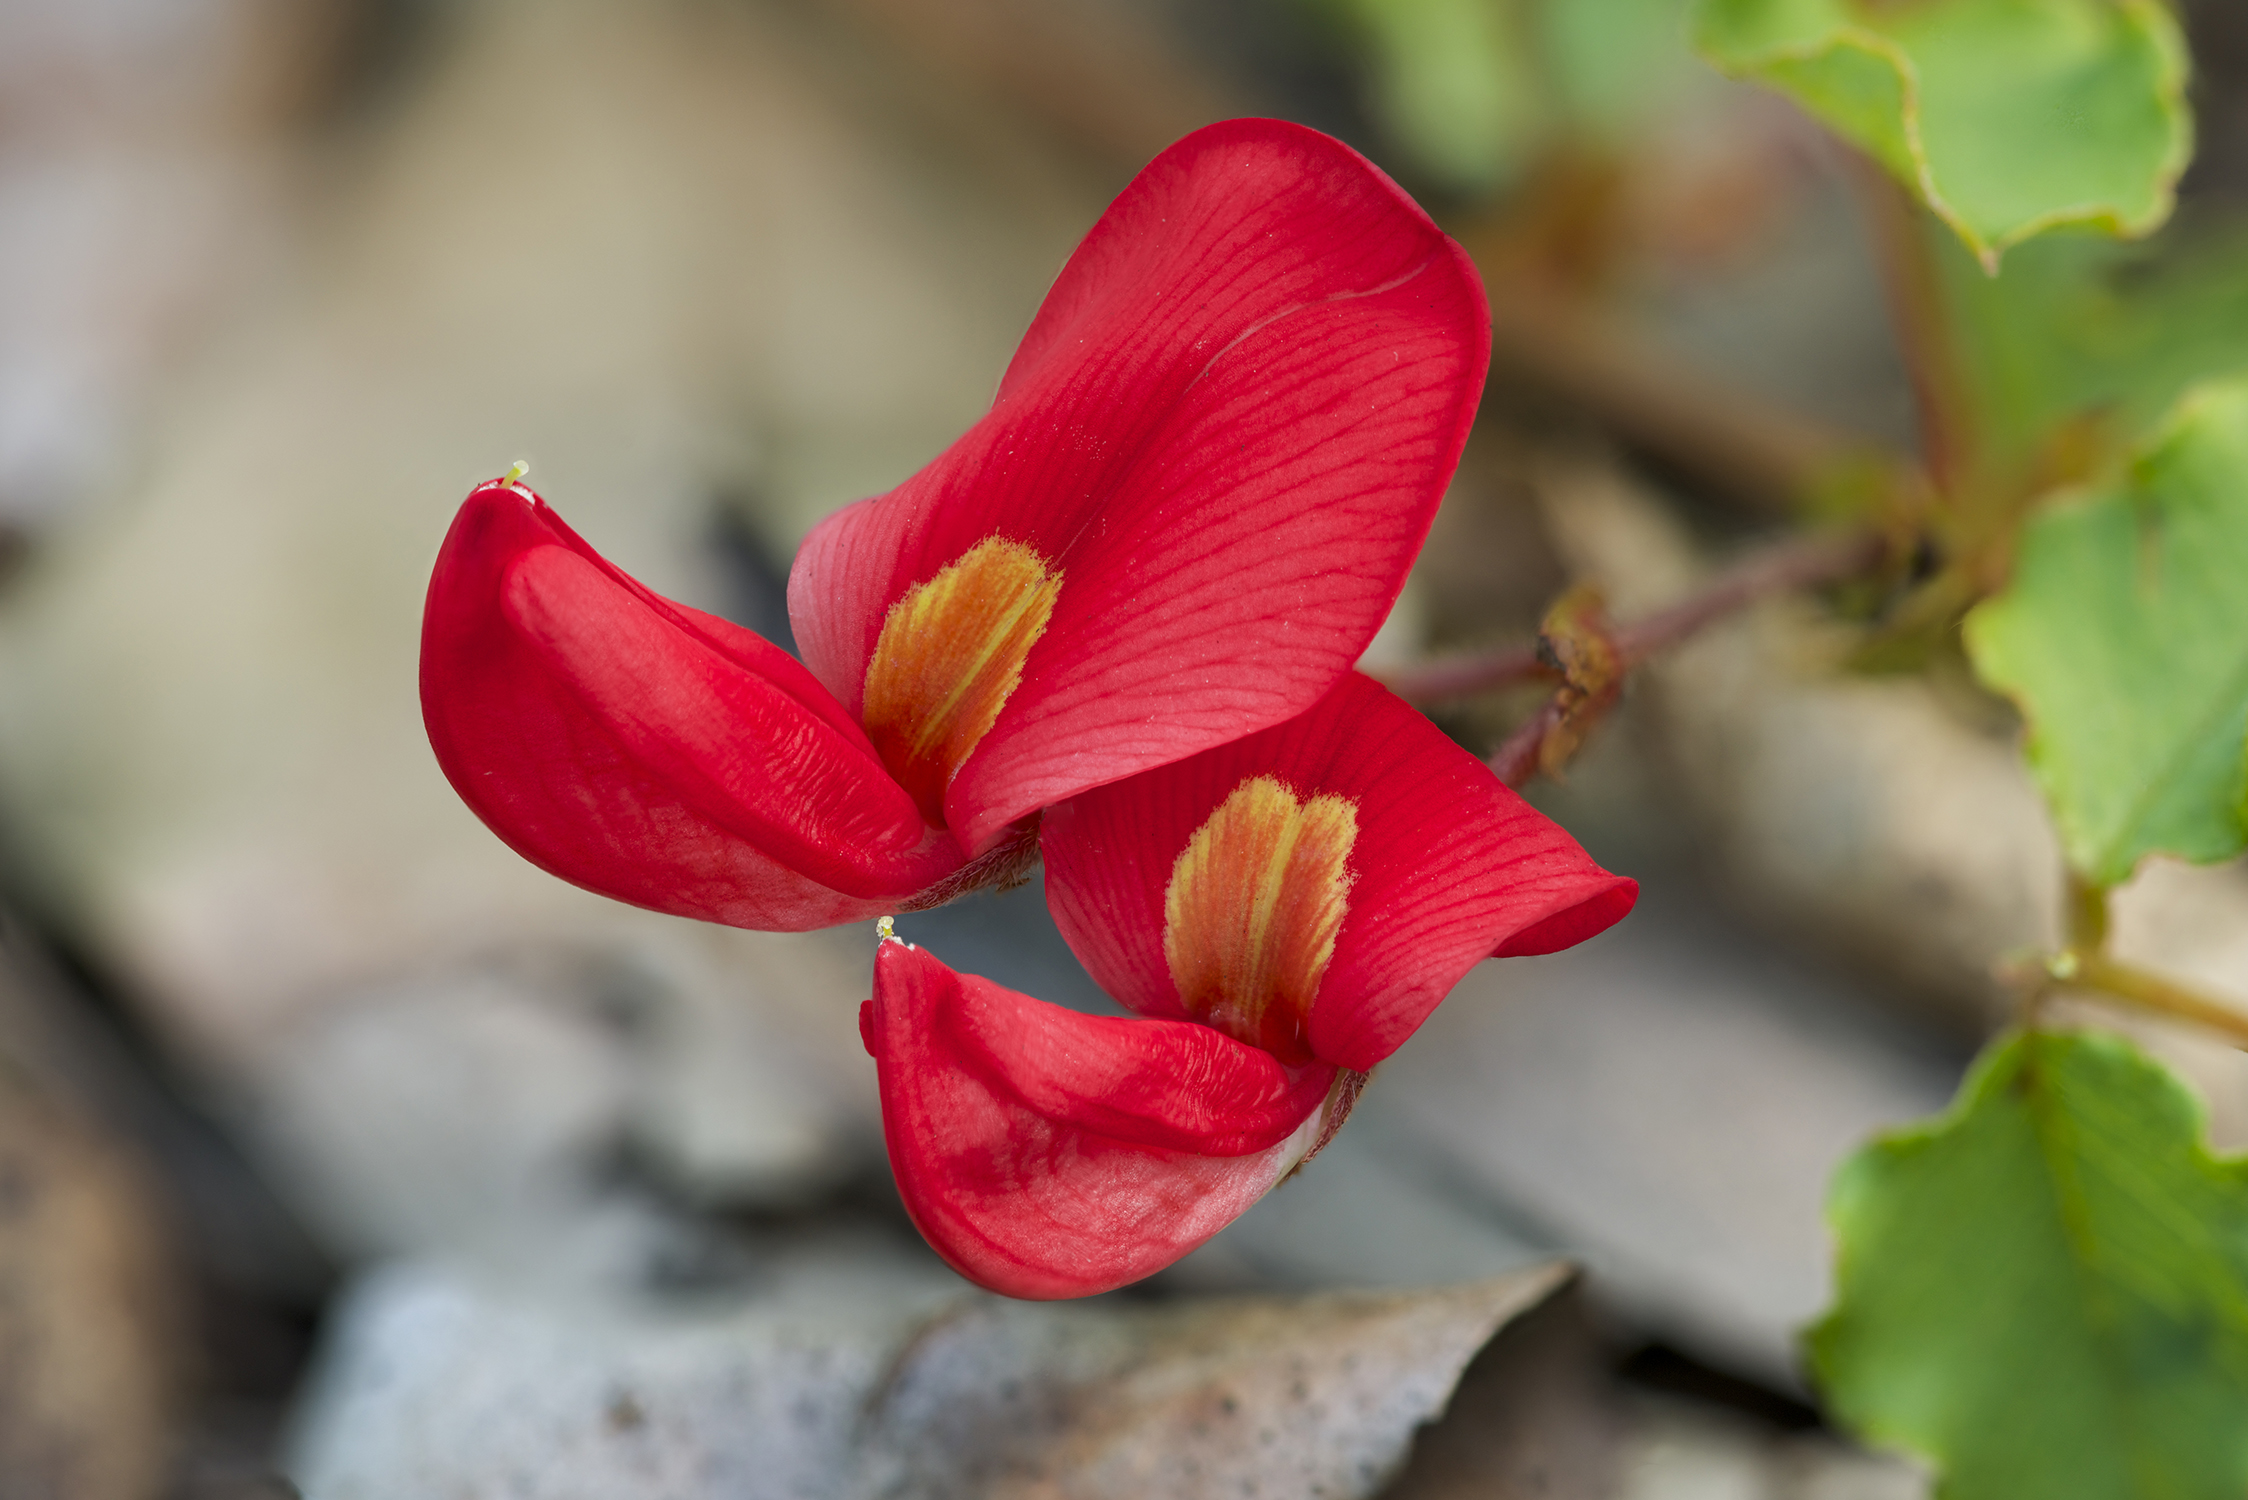 A bright red flower with yellow in the centre.